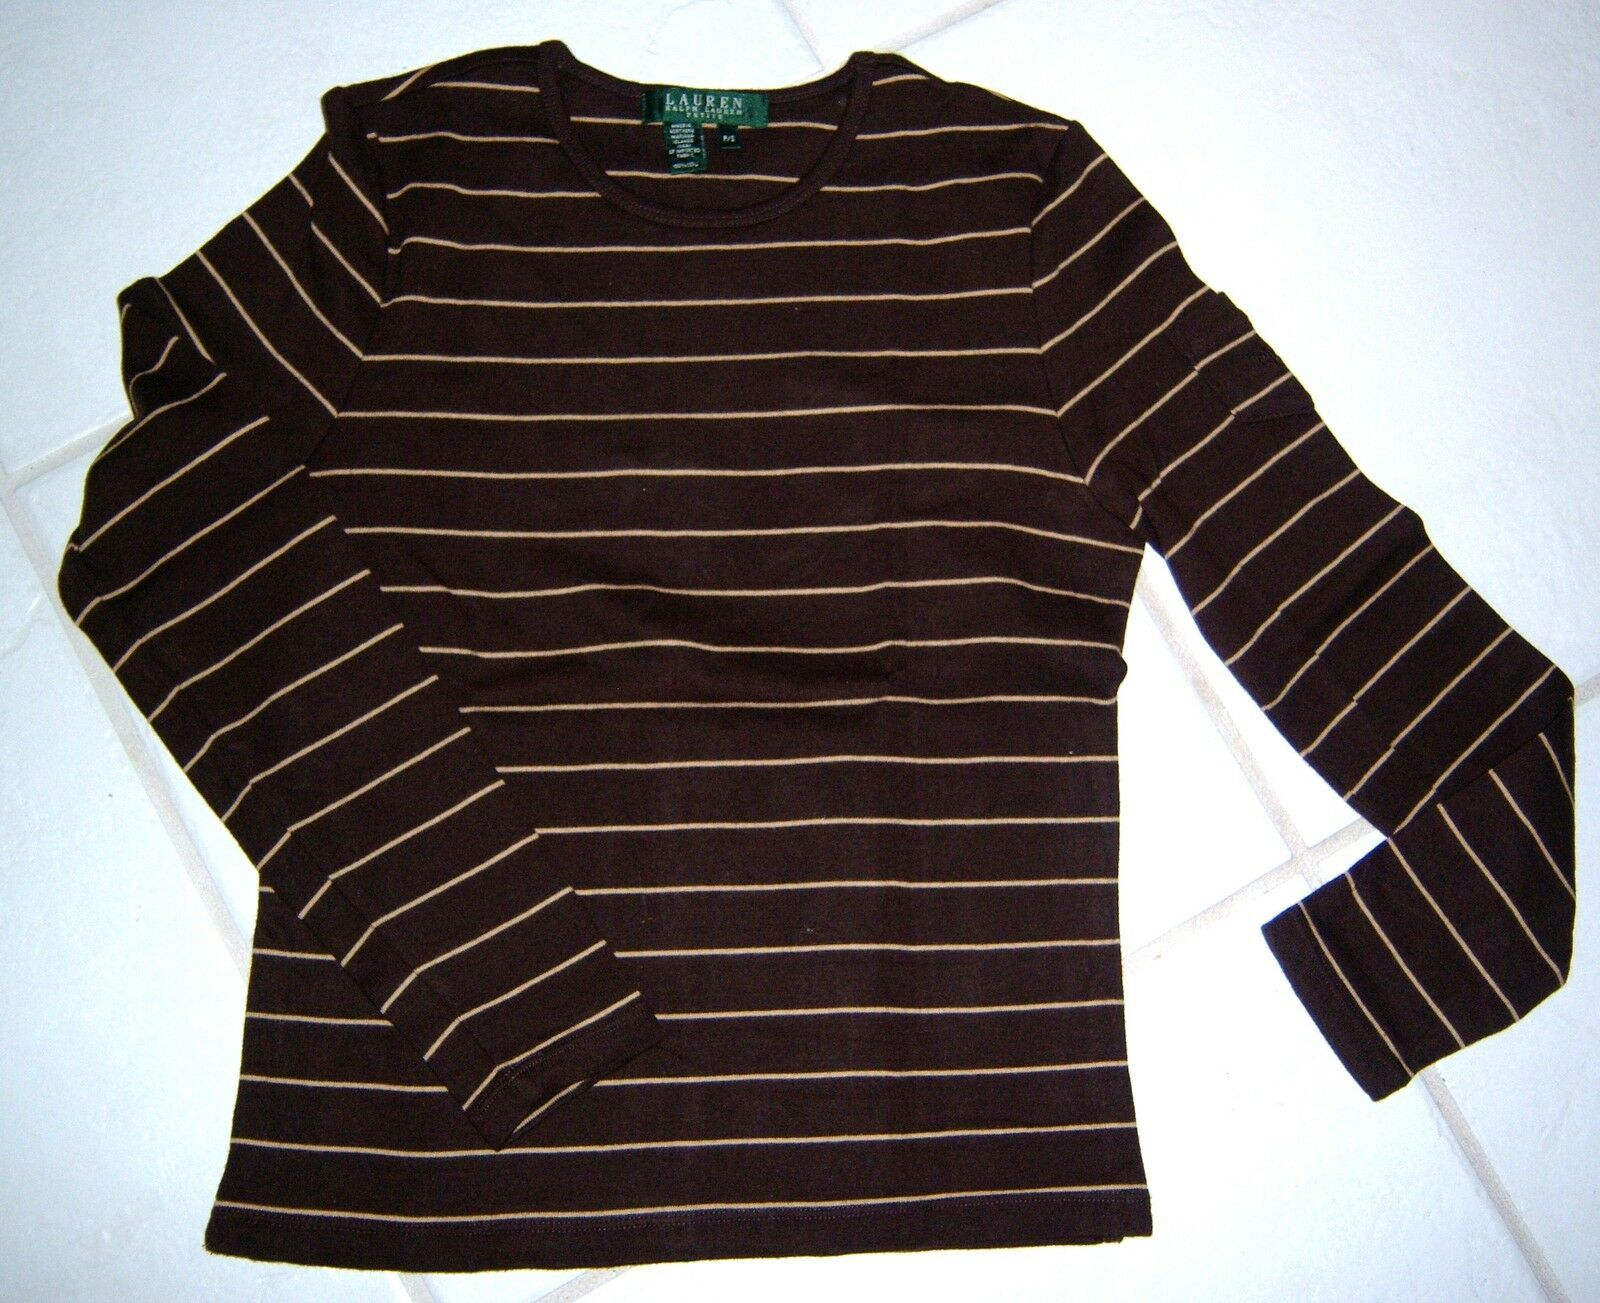 RALPH LAUREN Petite L/S Striped Knit Shirt Top Sleeve Pocket Logo SZ P/S